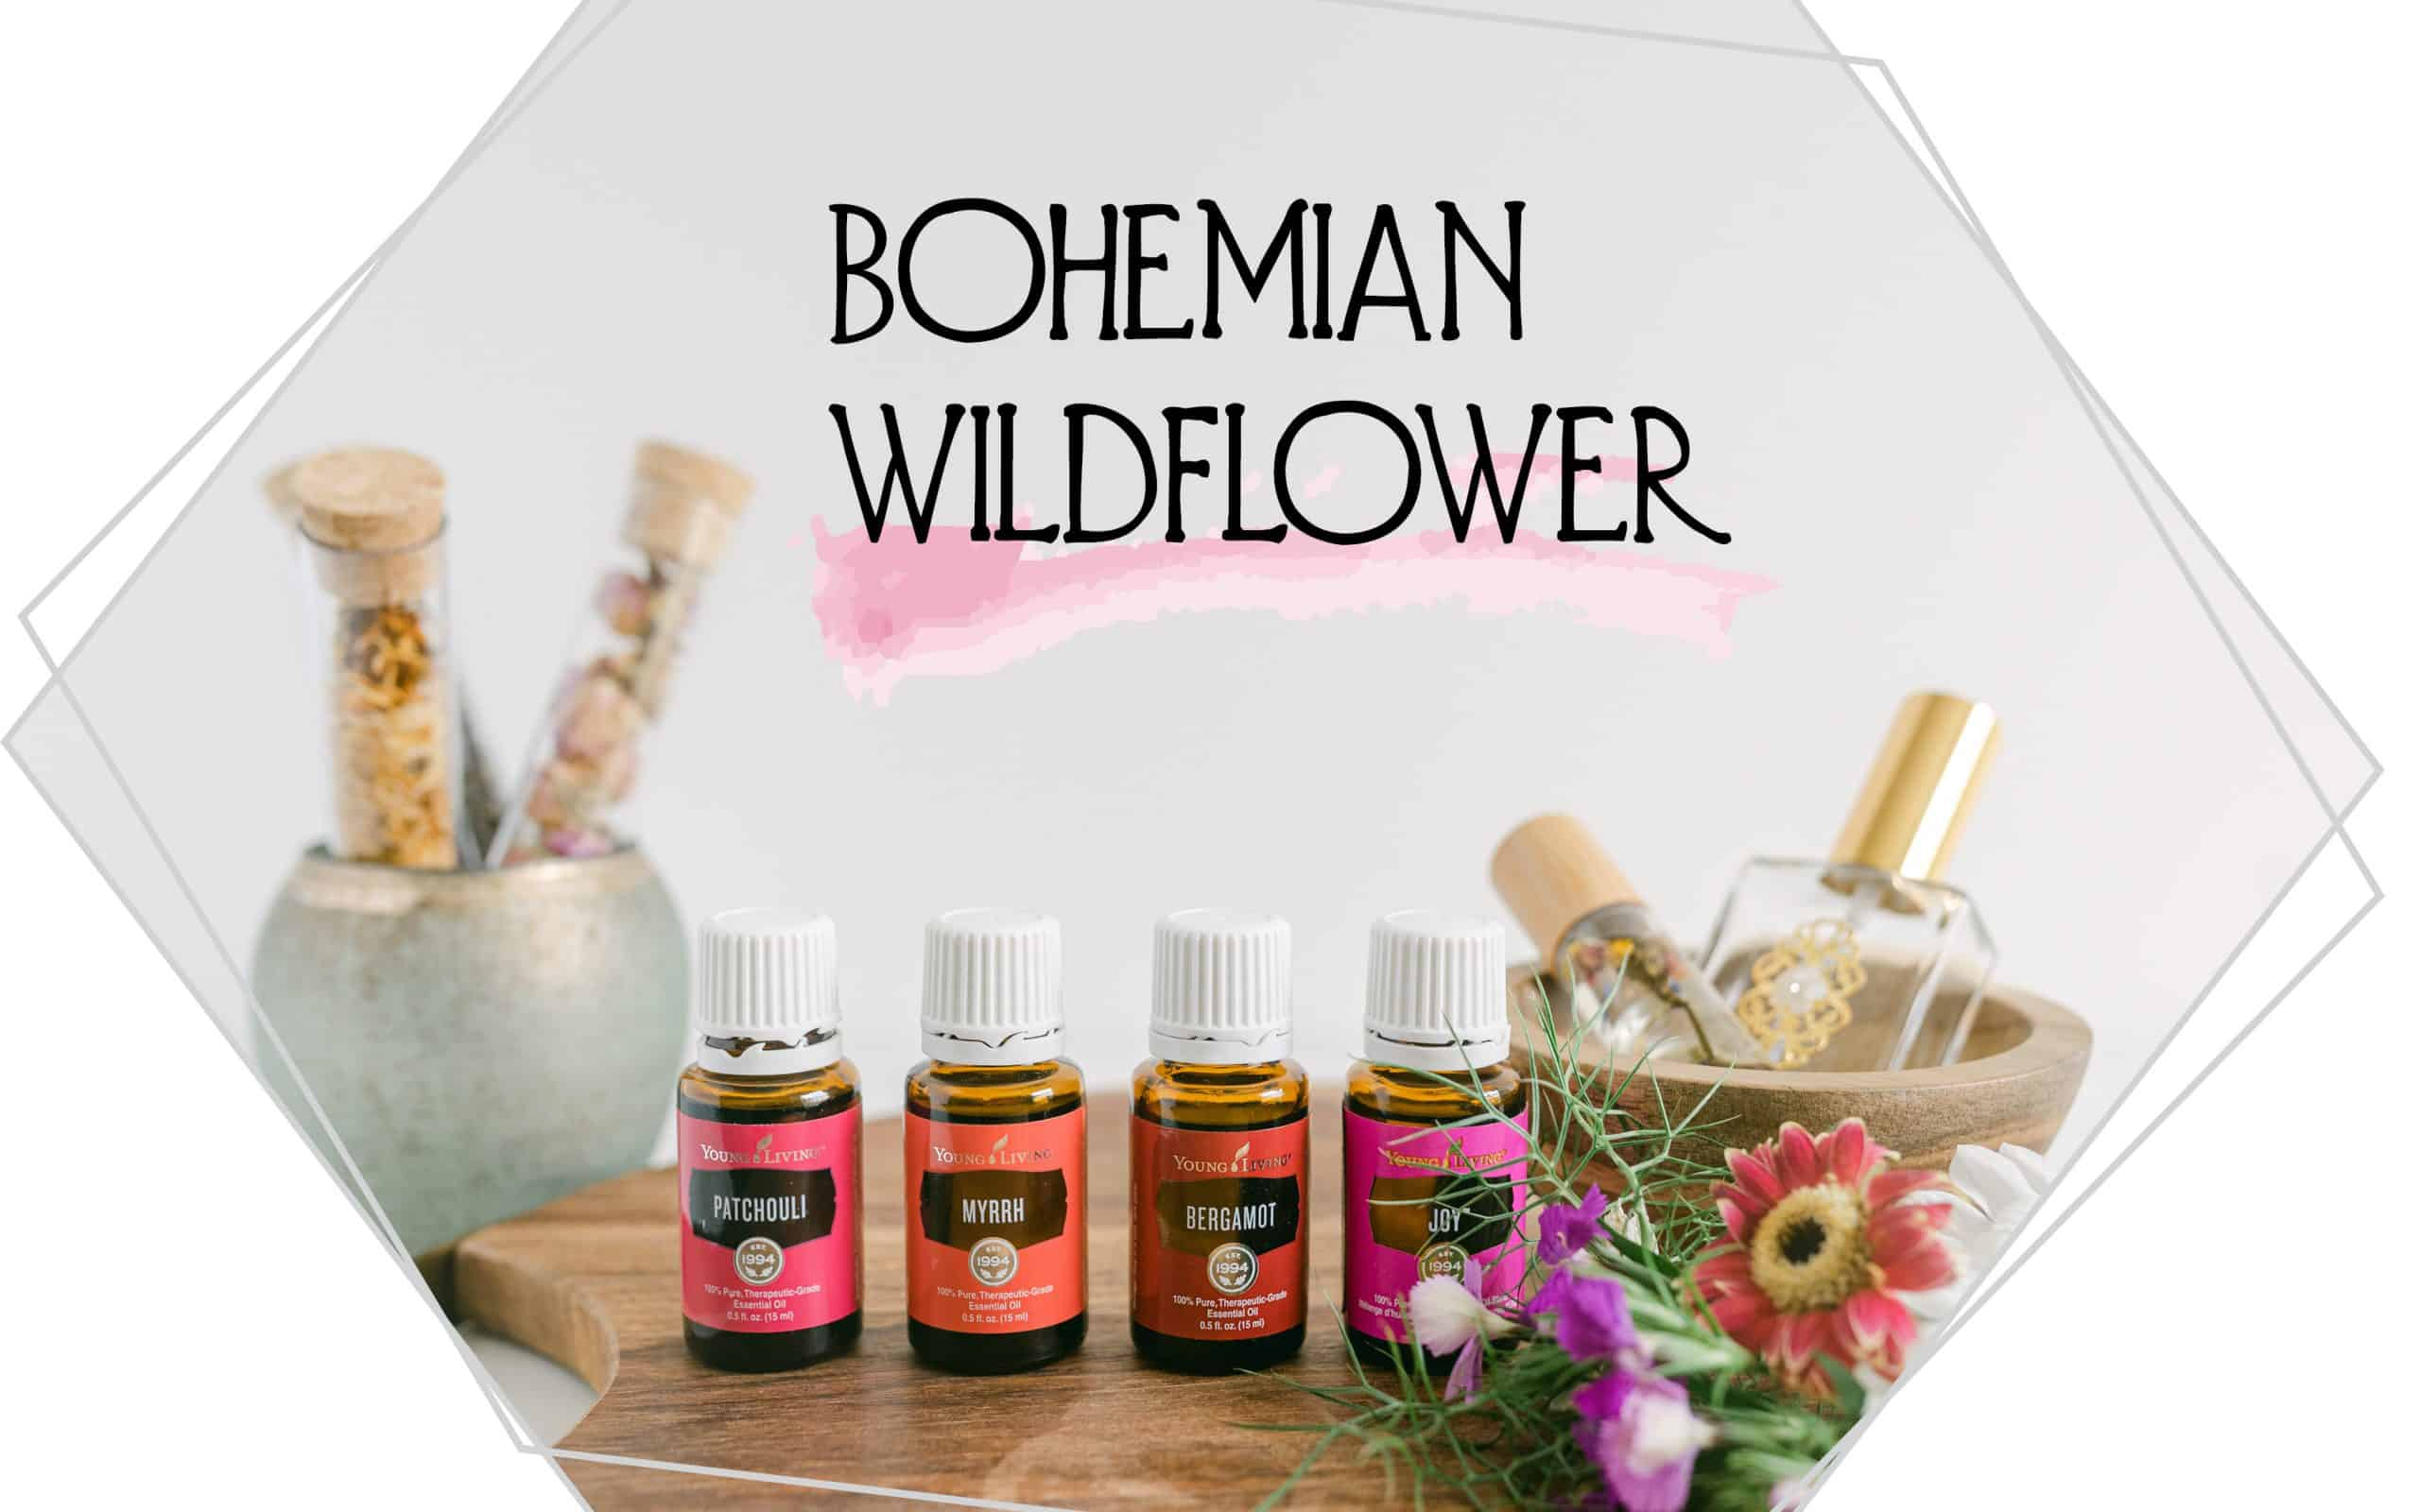 The words Bohemian Wildflower on a background along with essentialoils